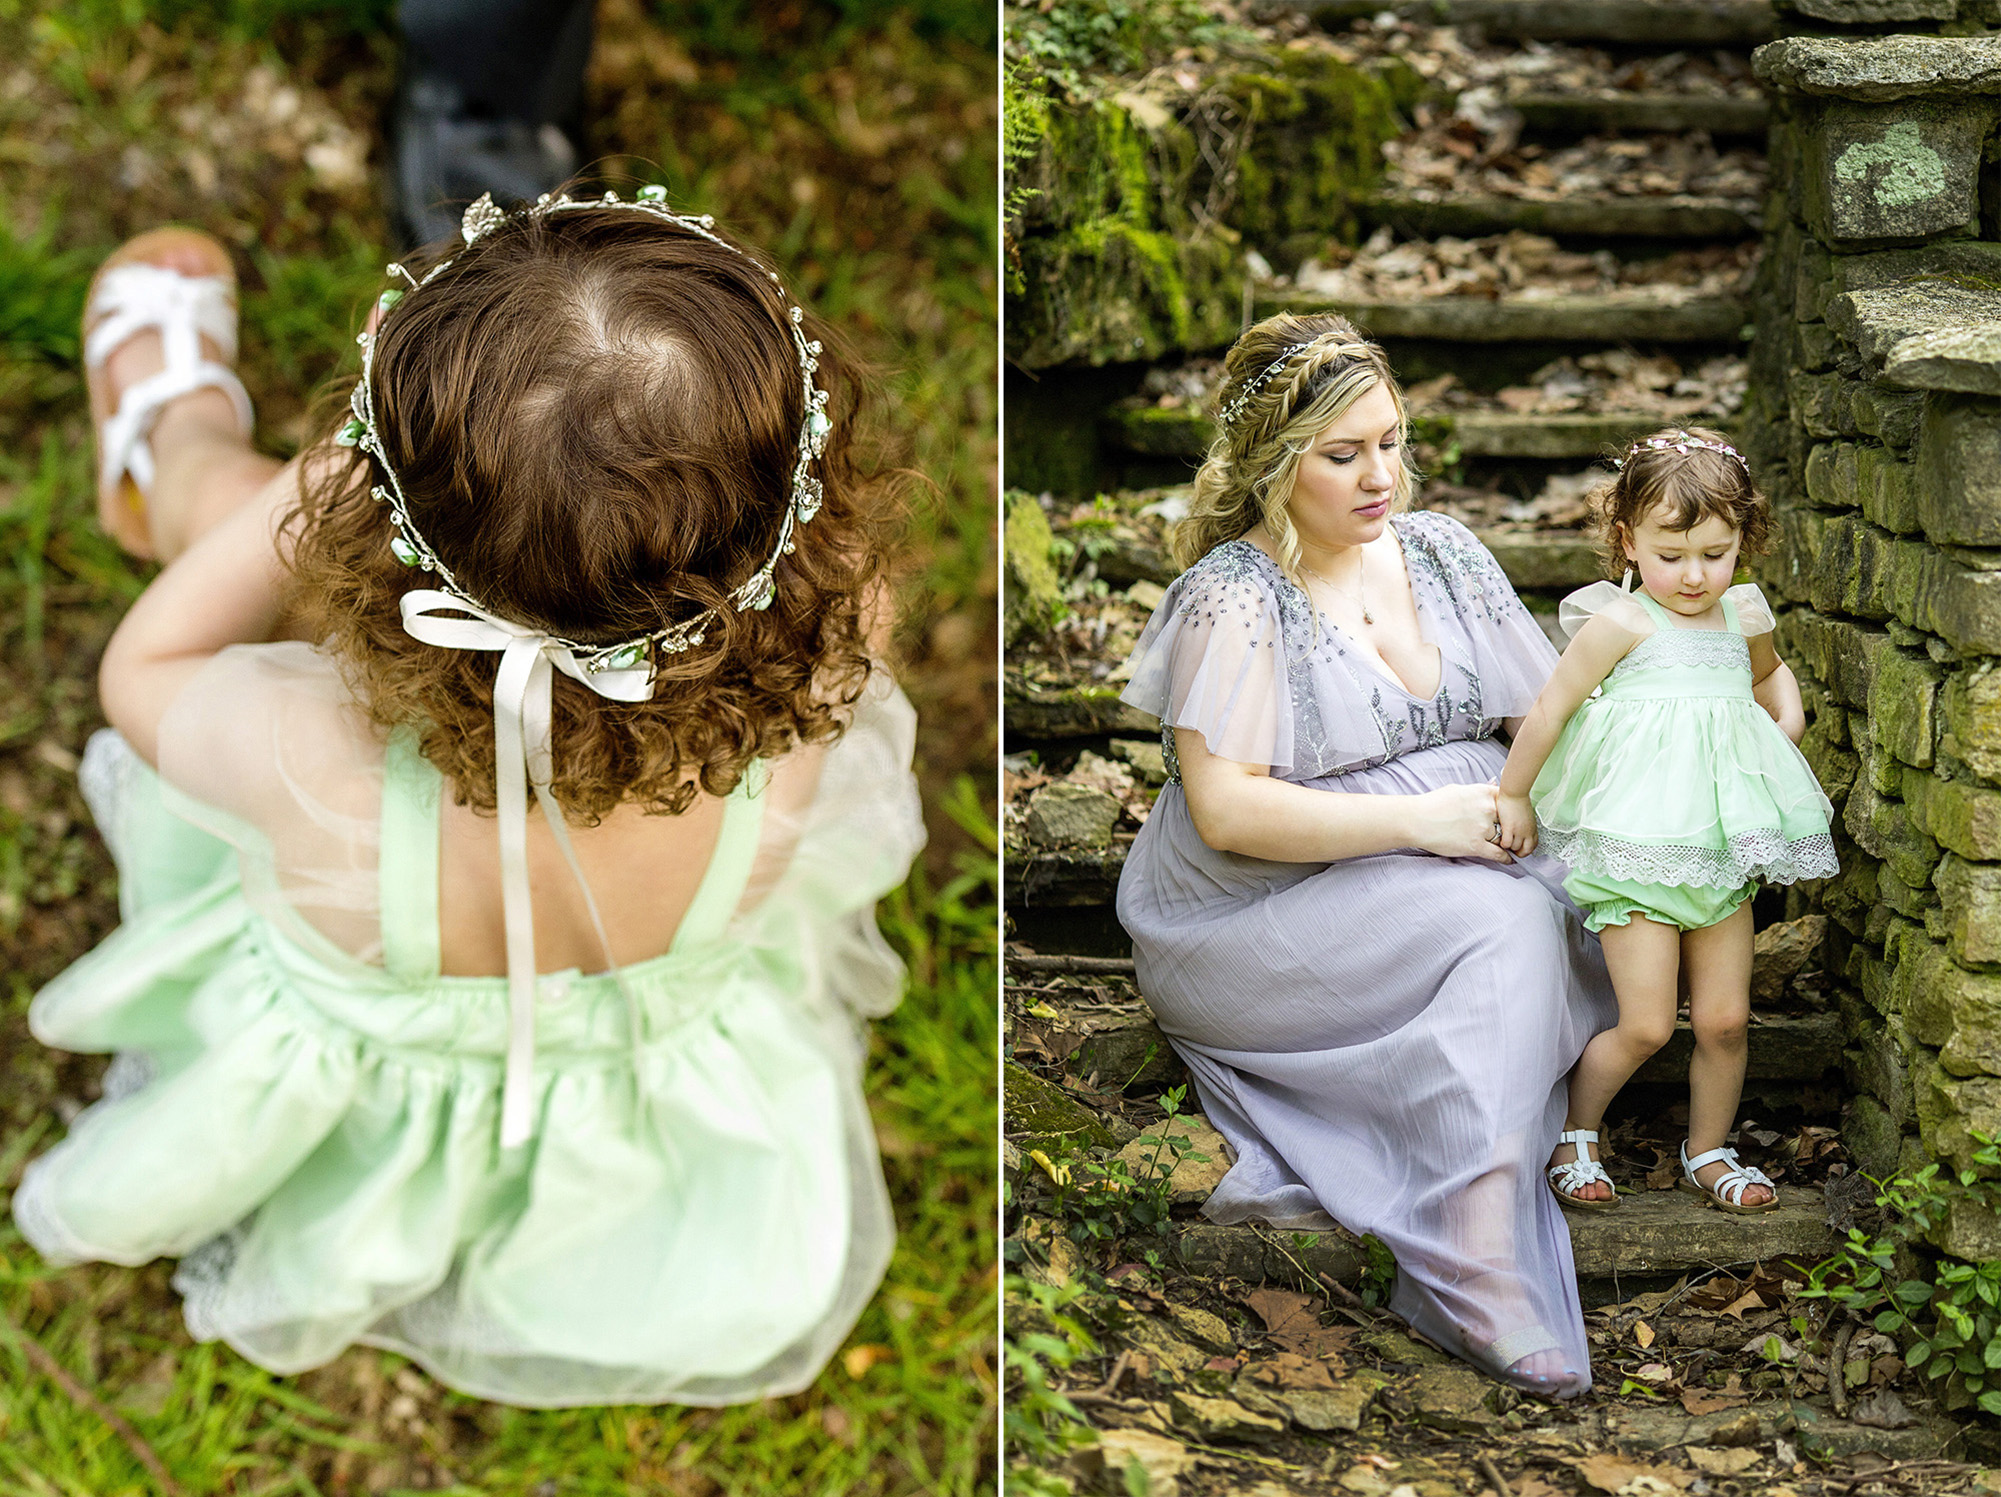 Seriously_Sabrina_Photography_Lexington_Kentucky_Fairytale_Maternity_Portraits_Horse_Park_Reynolds_25.jpg